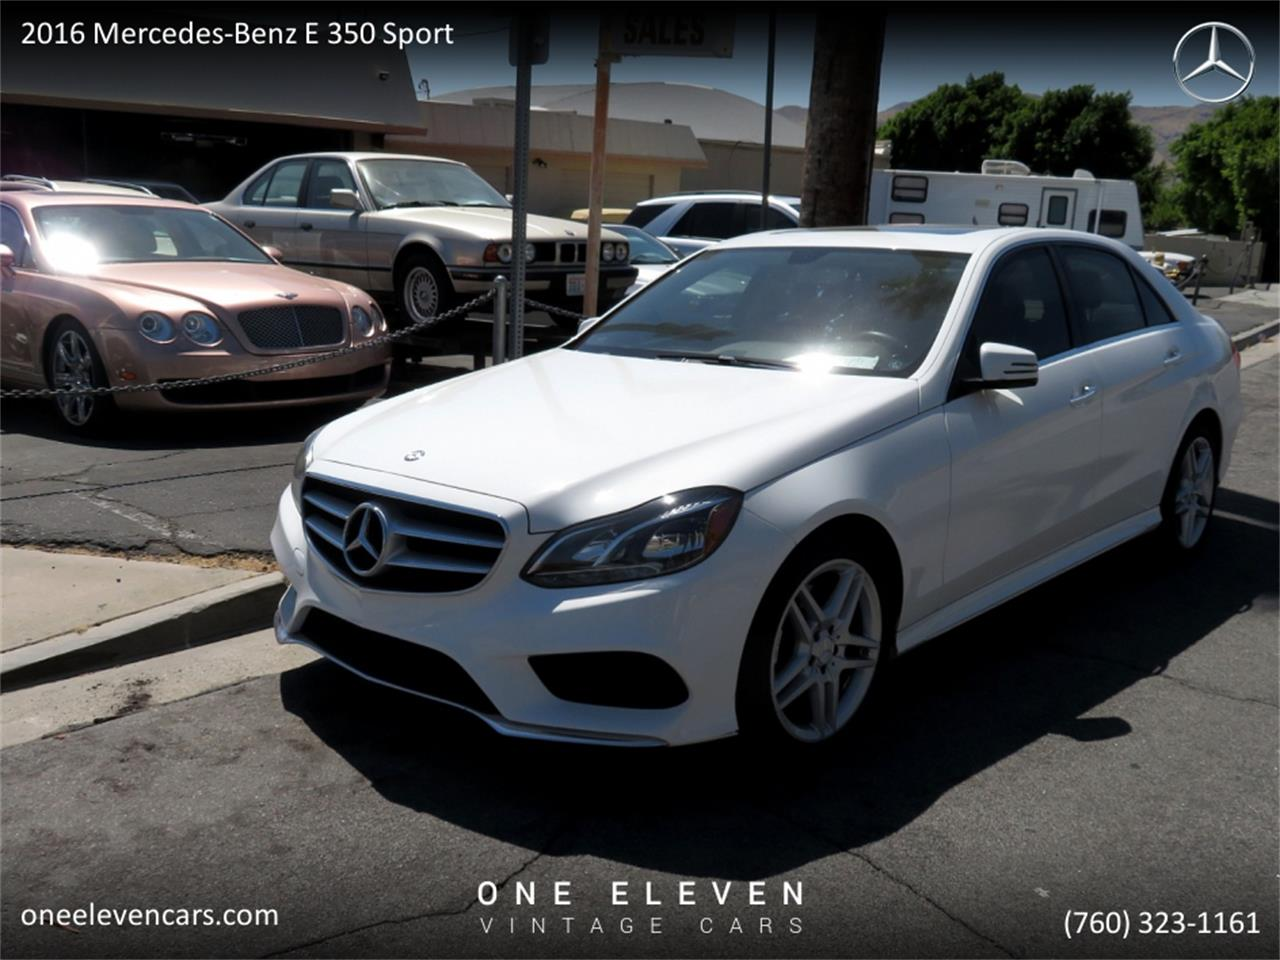 for sale 2016 mercedes-benz e-class in palm springs, california cars - palm springs, ca at geebo